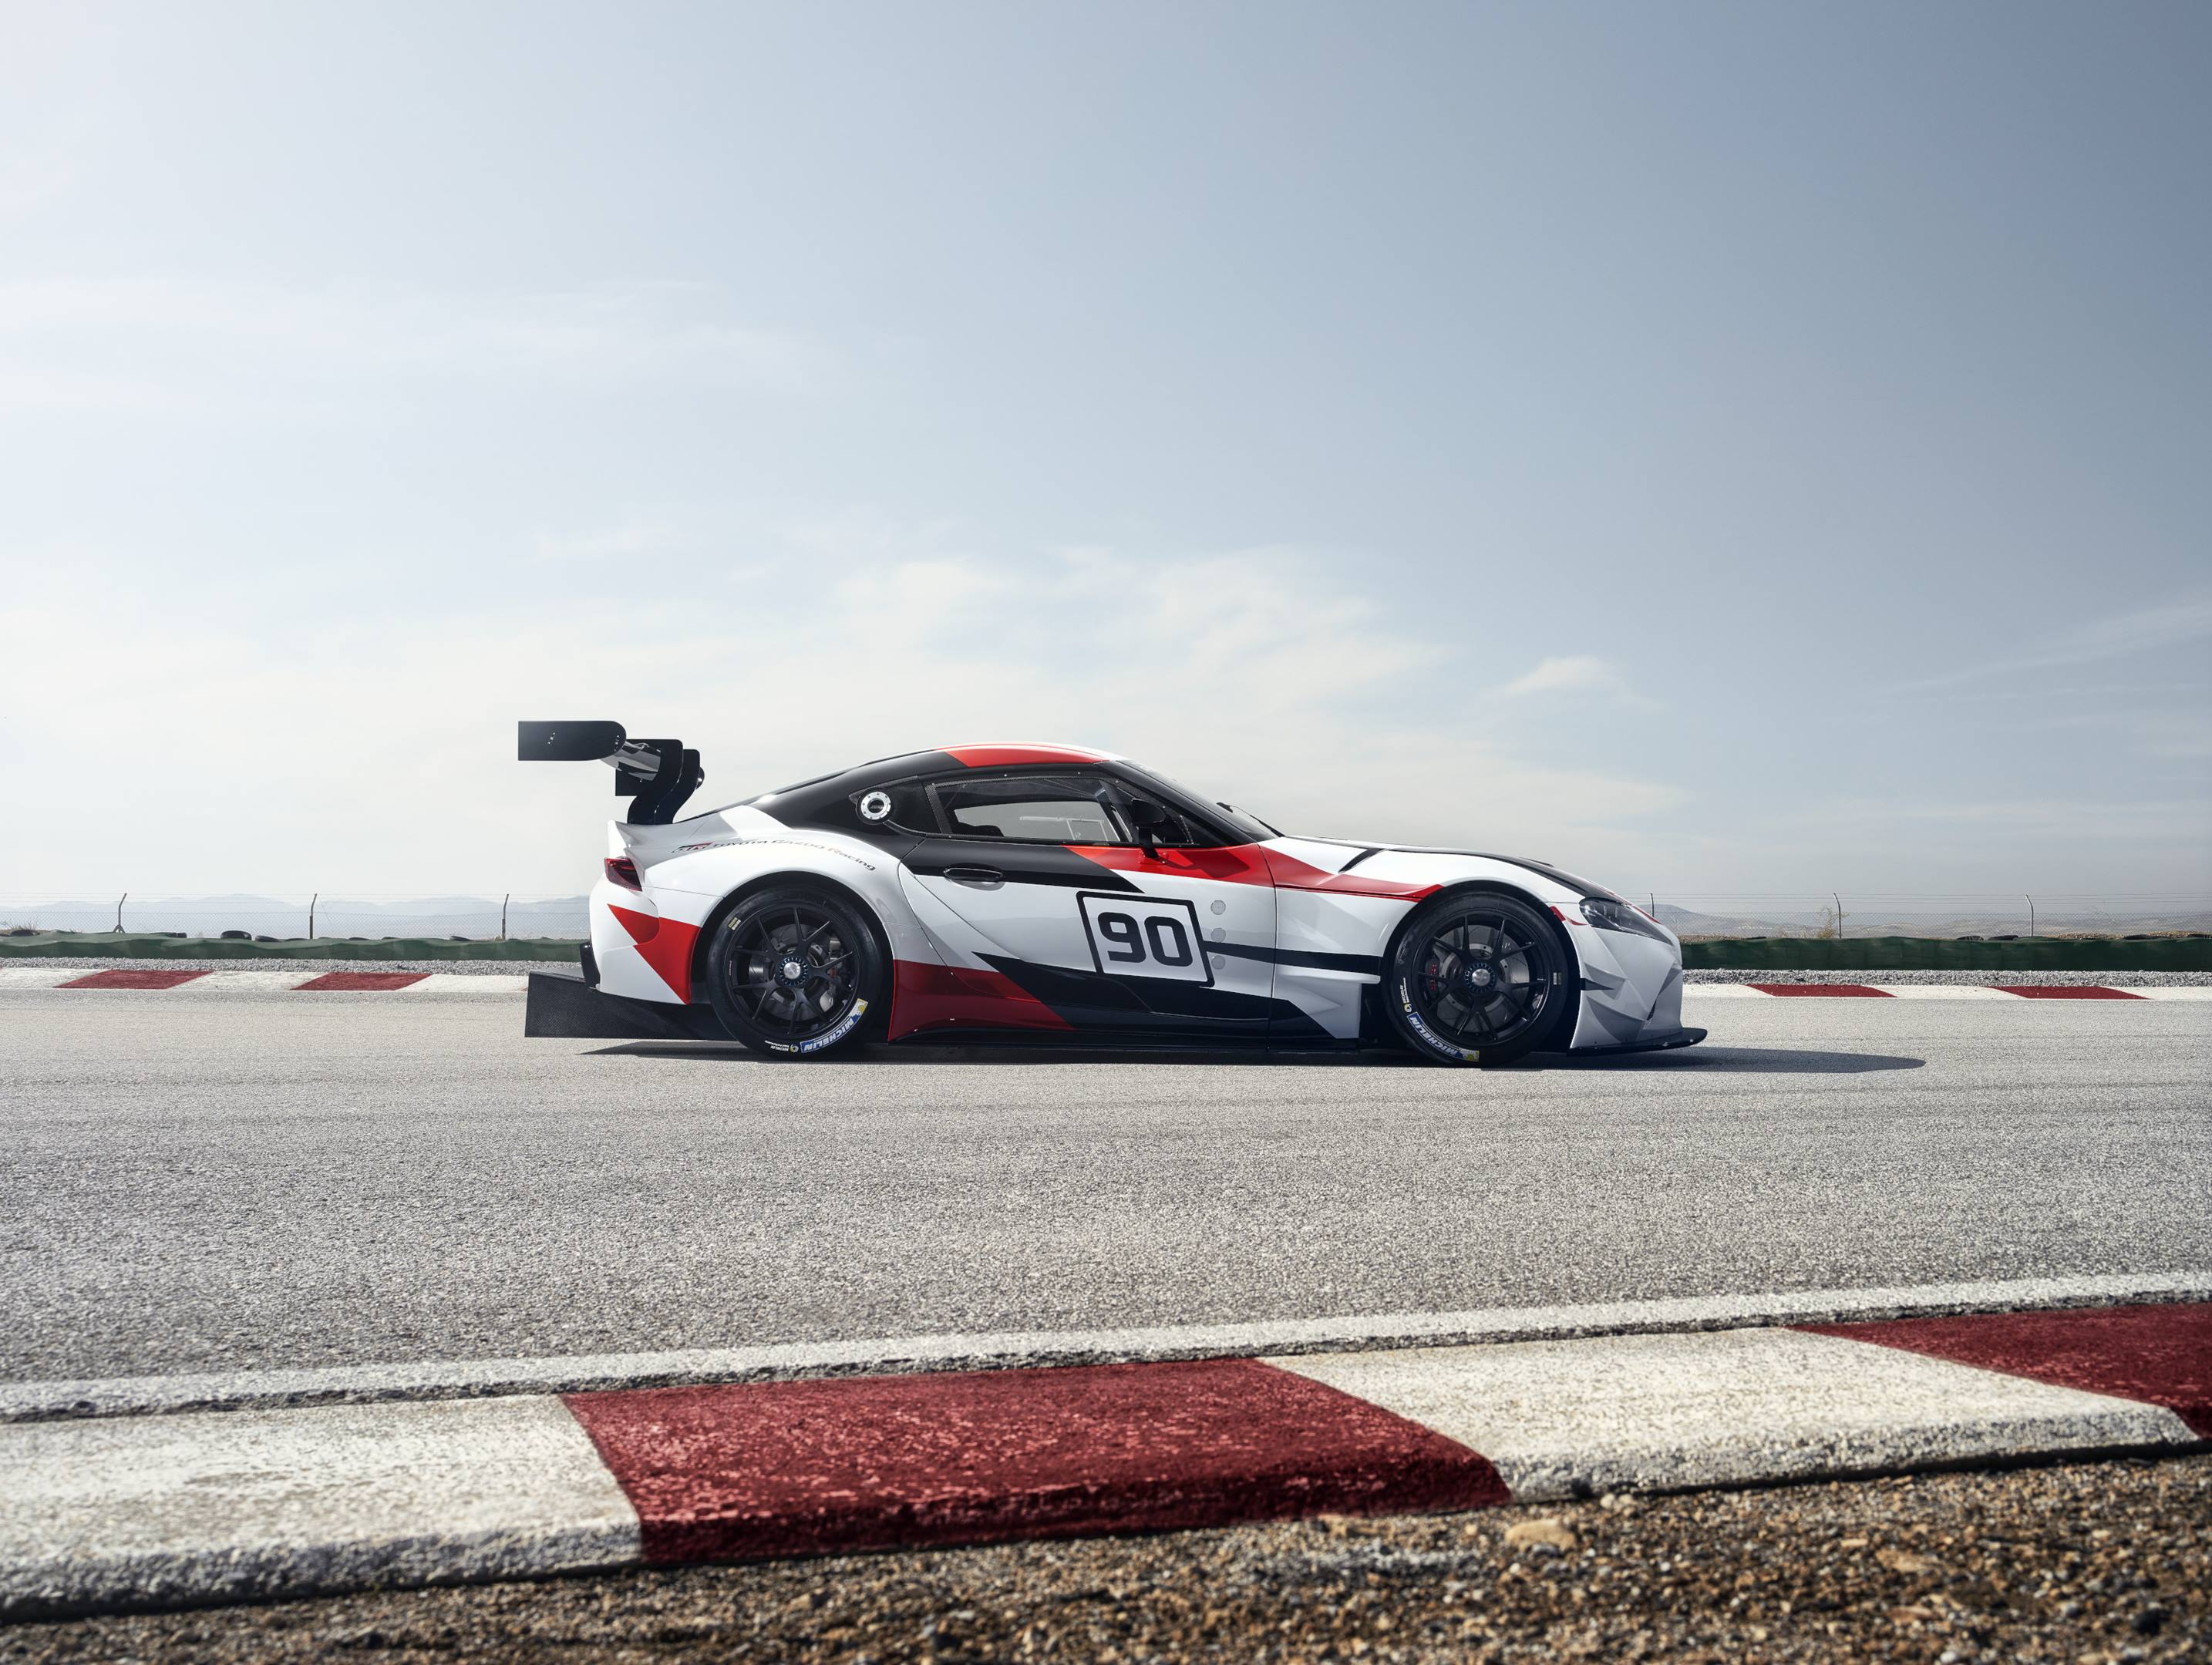 Toyota Supra racing concept profile on the track